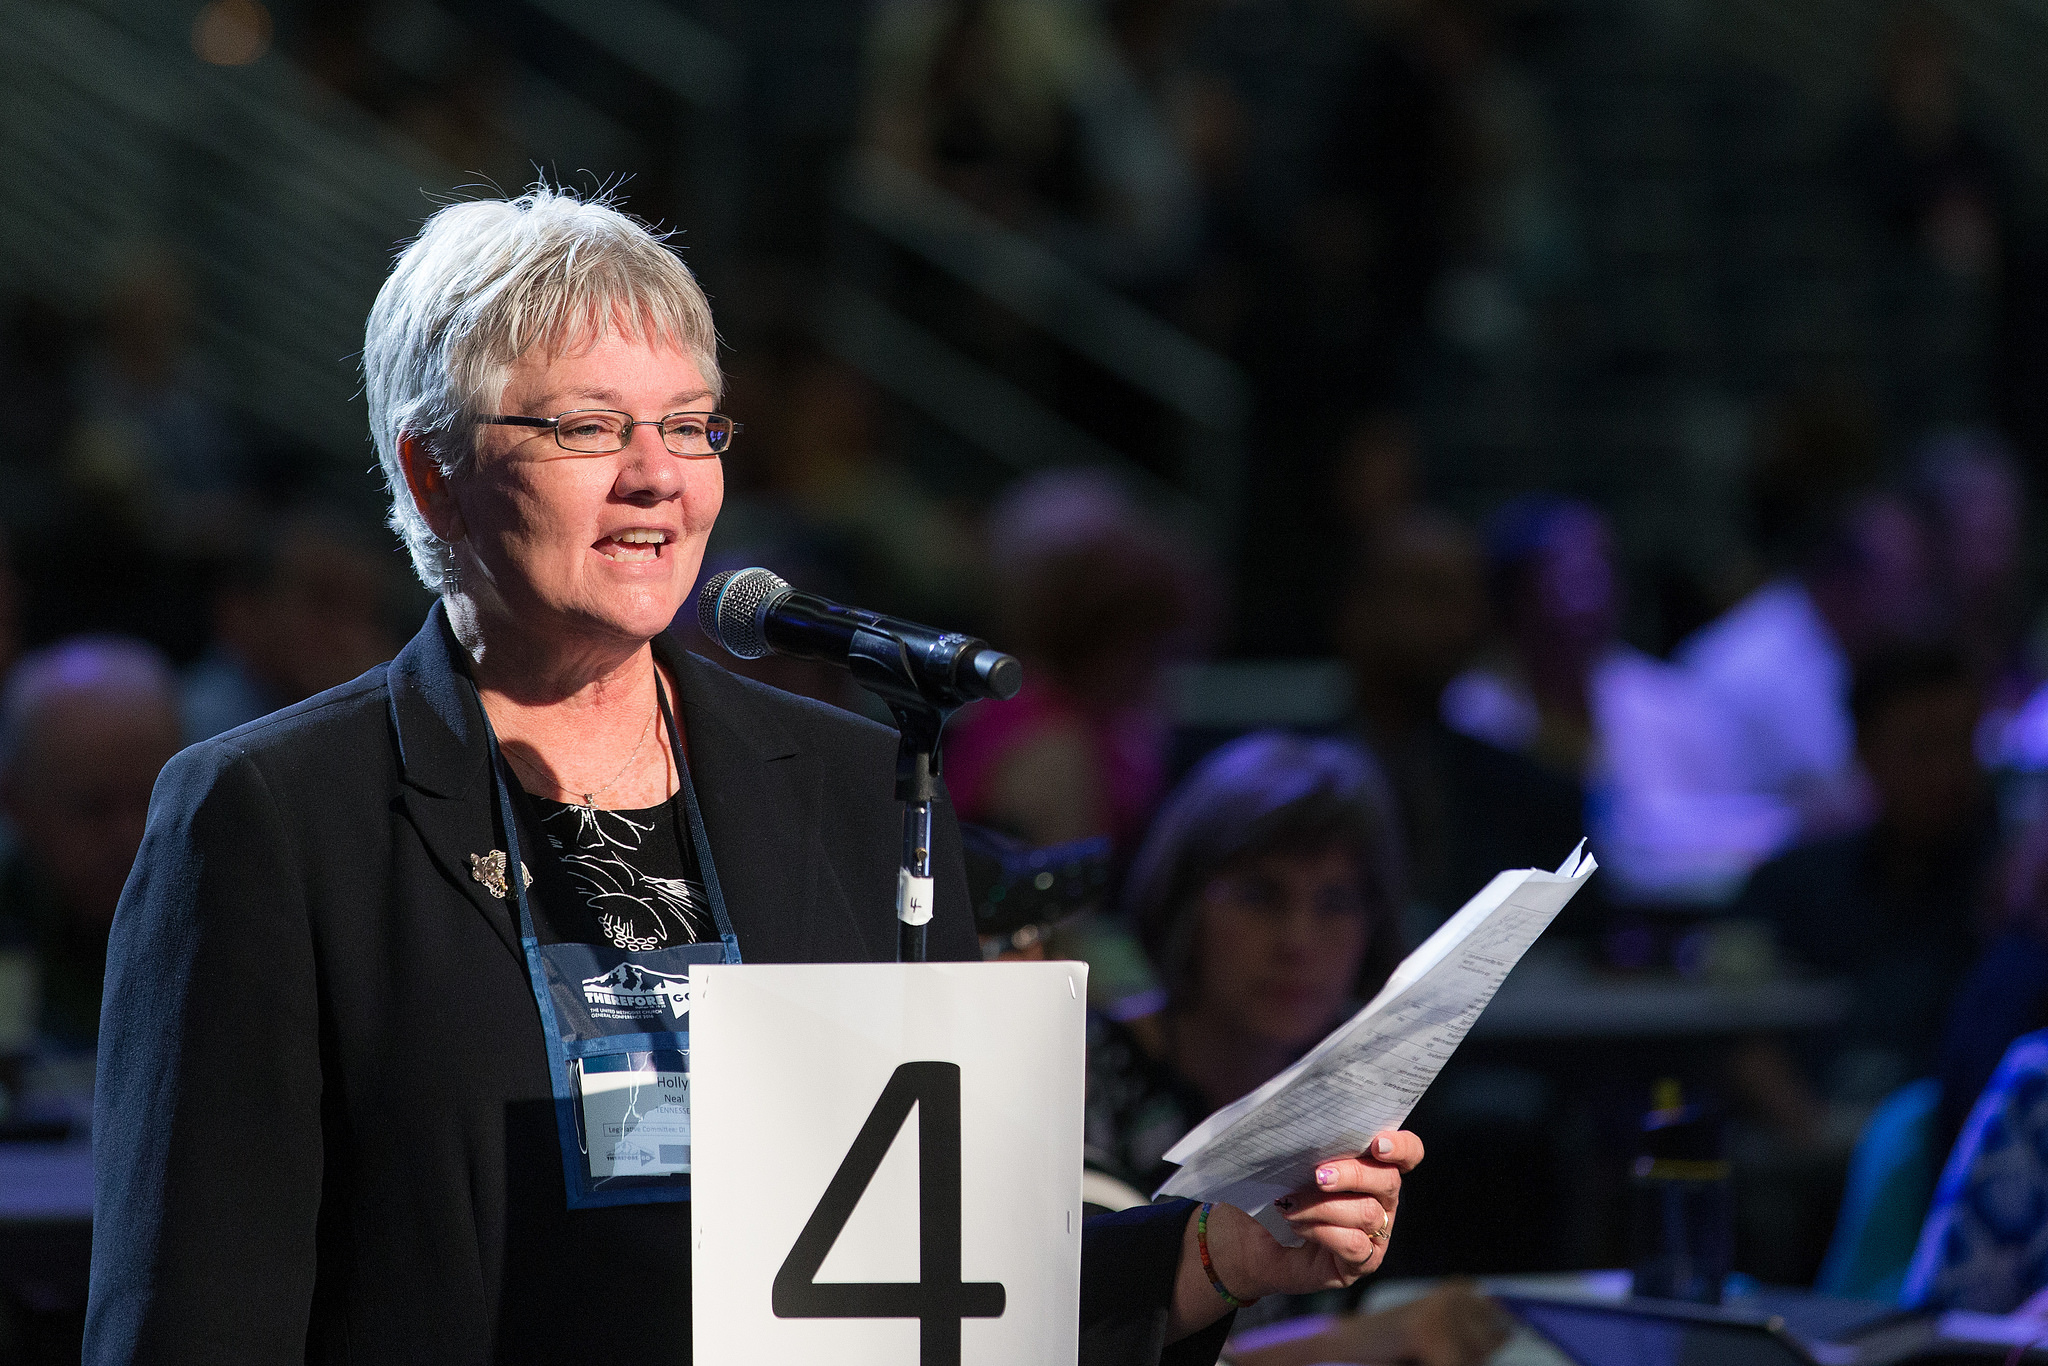 Holly Neal of the Tennessee Conference helps deliver the laity address during the 2016 United Methodist General Conference in Portland, Ore. Photo by Mike DuBose, UMNS.